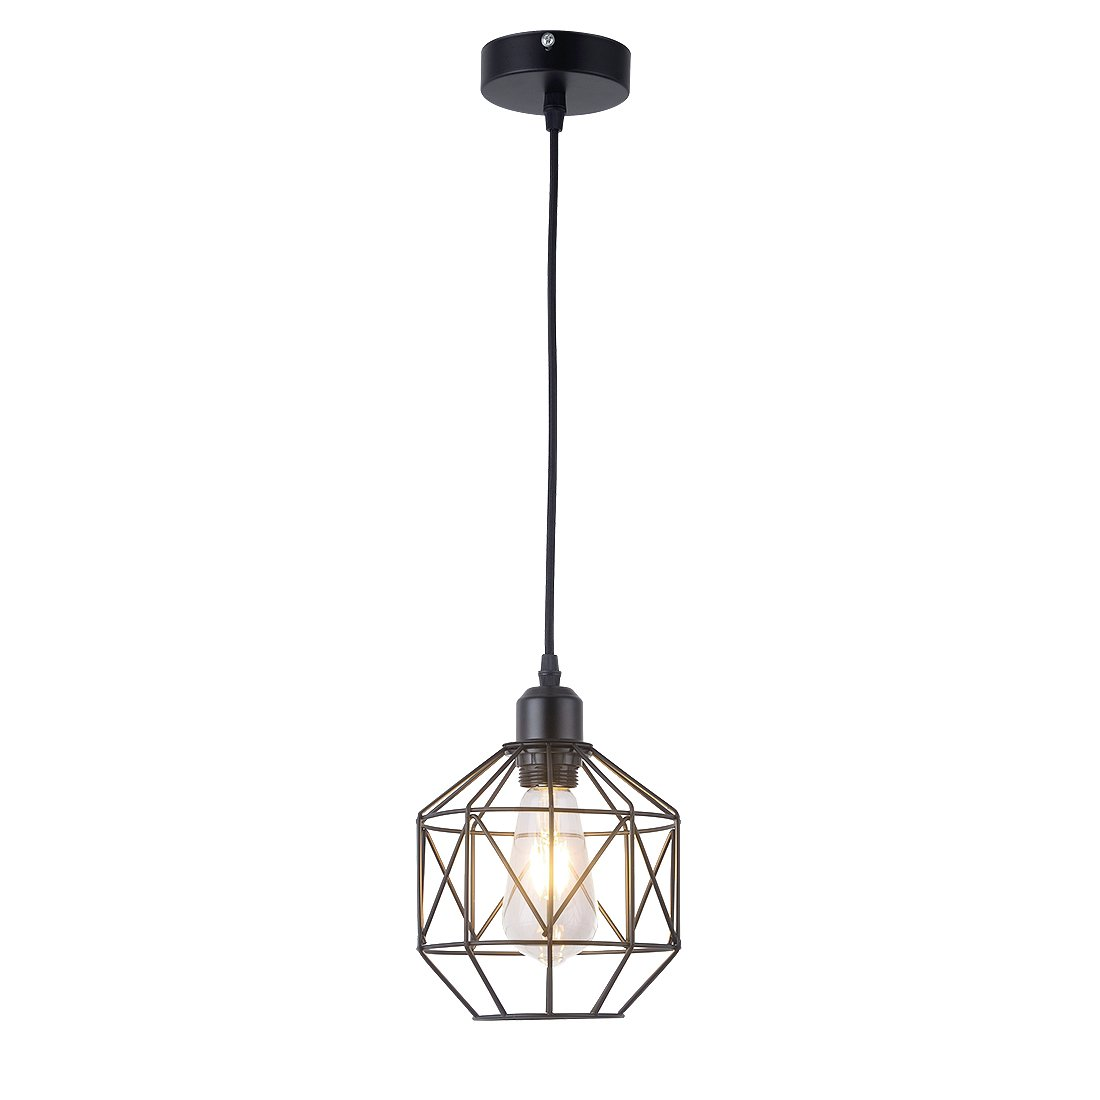 Pendant Light,Retro Style,Vintage Loft Design,Black Basket Cage Hanging Ceiling Lamp,Industrial Lighting Fixture and Decoration for Living Room Bedroom